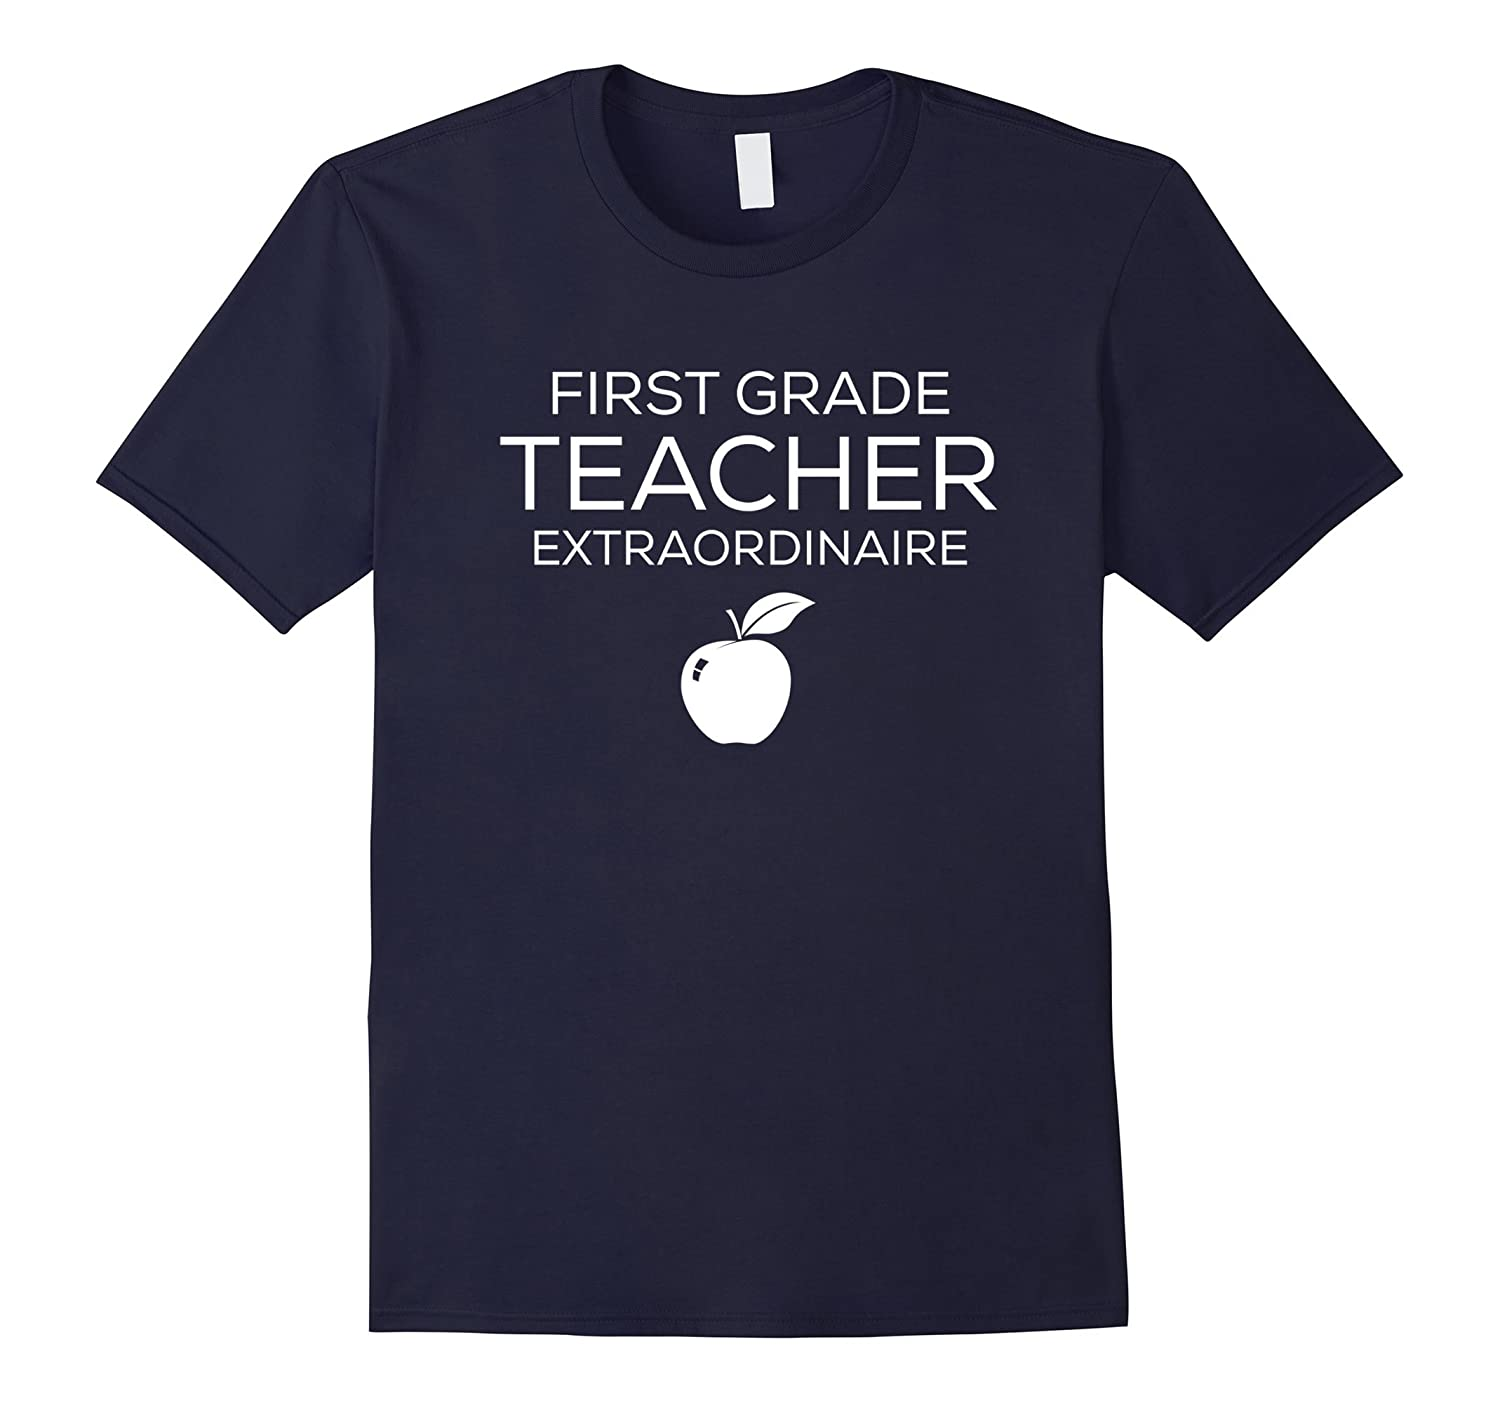 1st First Grade Teacher Funny Tee Shirt Men Women tshirt-4LVS